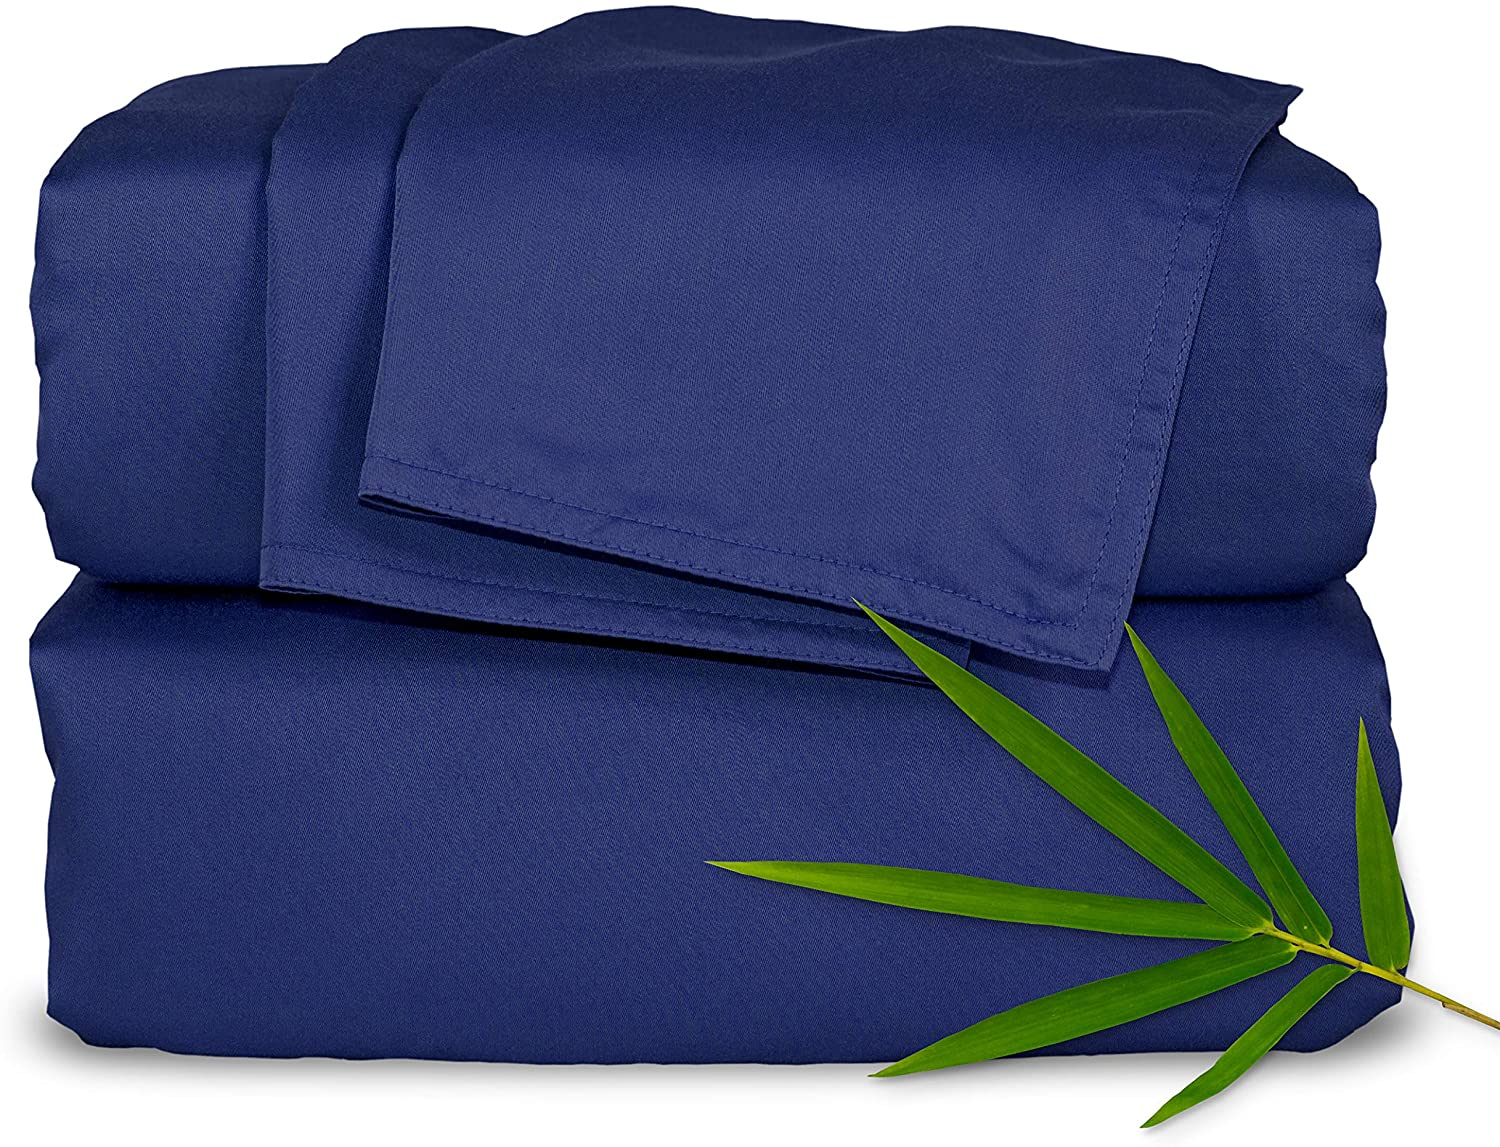 Pure Bamboo Sheets Full Size Bed Sheets 4 Piece Set, 100% Organic Bamboo, Luxuriously Soft & Cooling, Double Stitching, 16